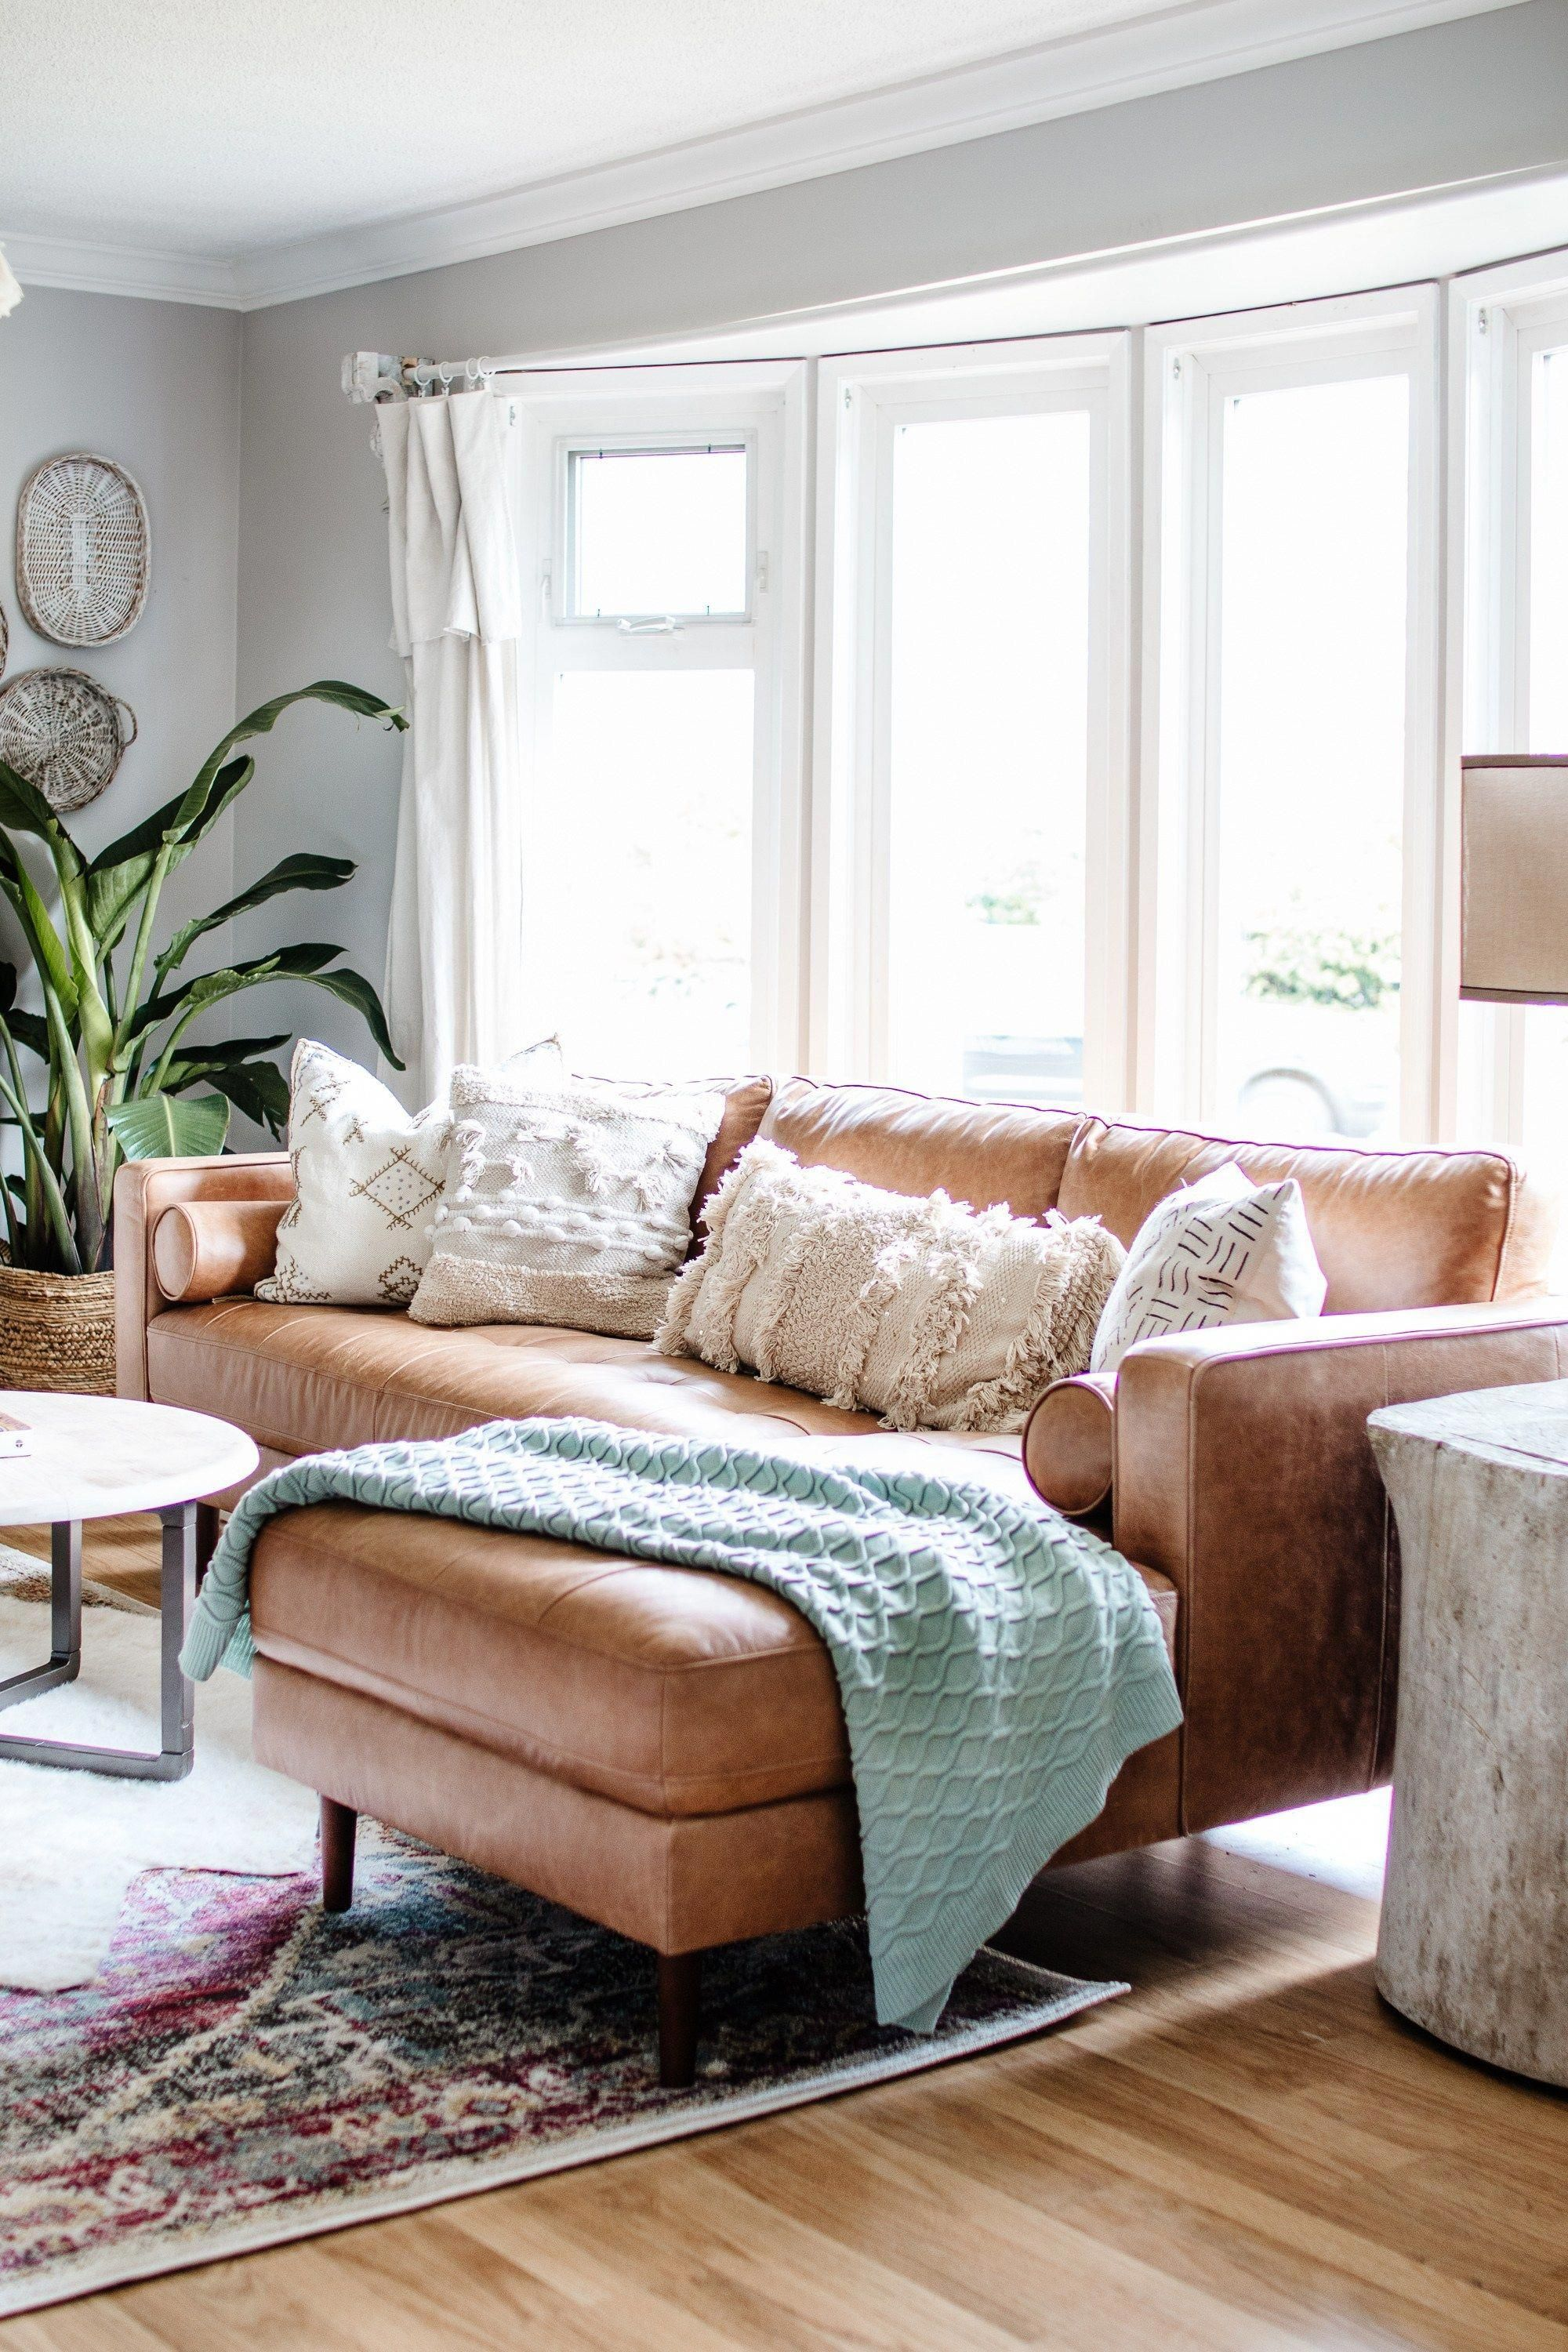 home decor information are offered on our internet site. Read more and you will not be sorry you did. #homedecor